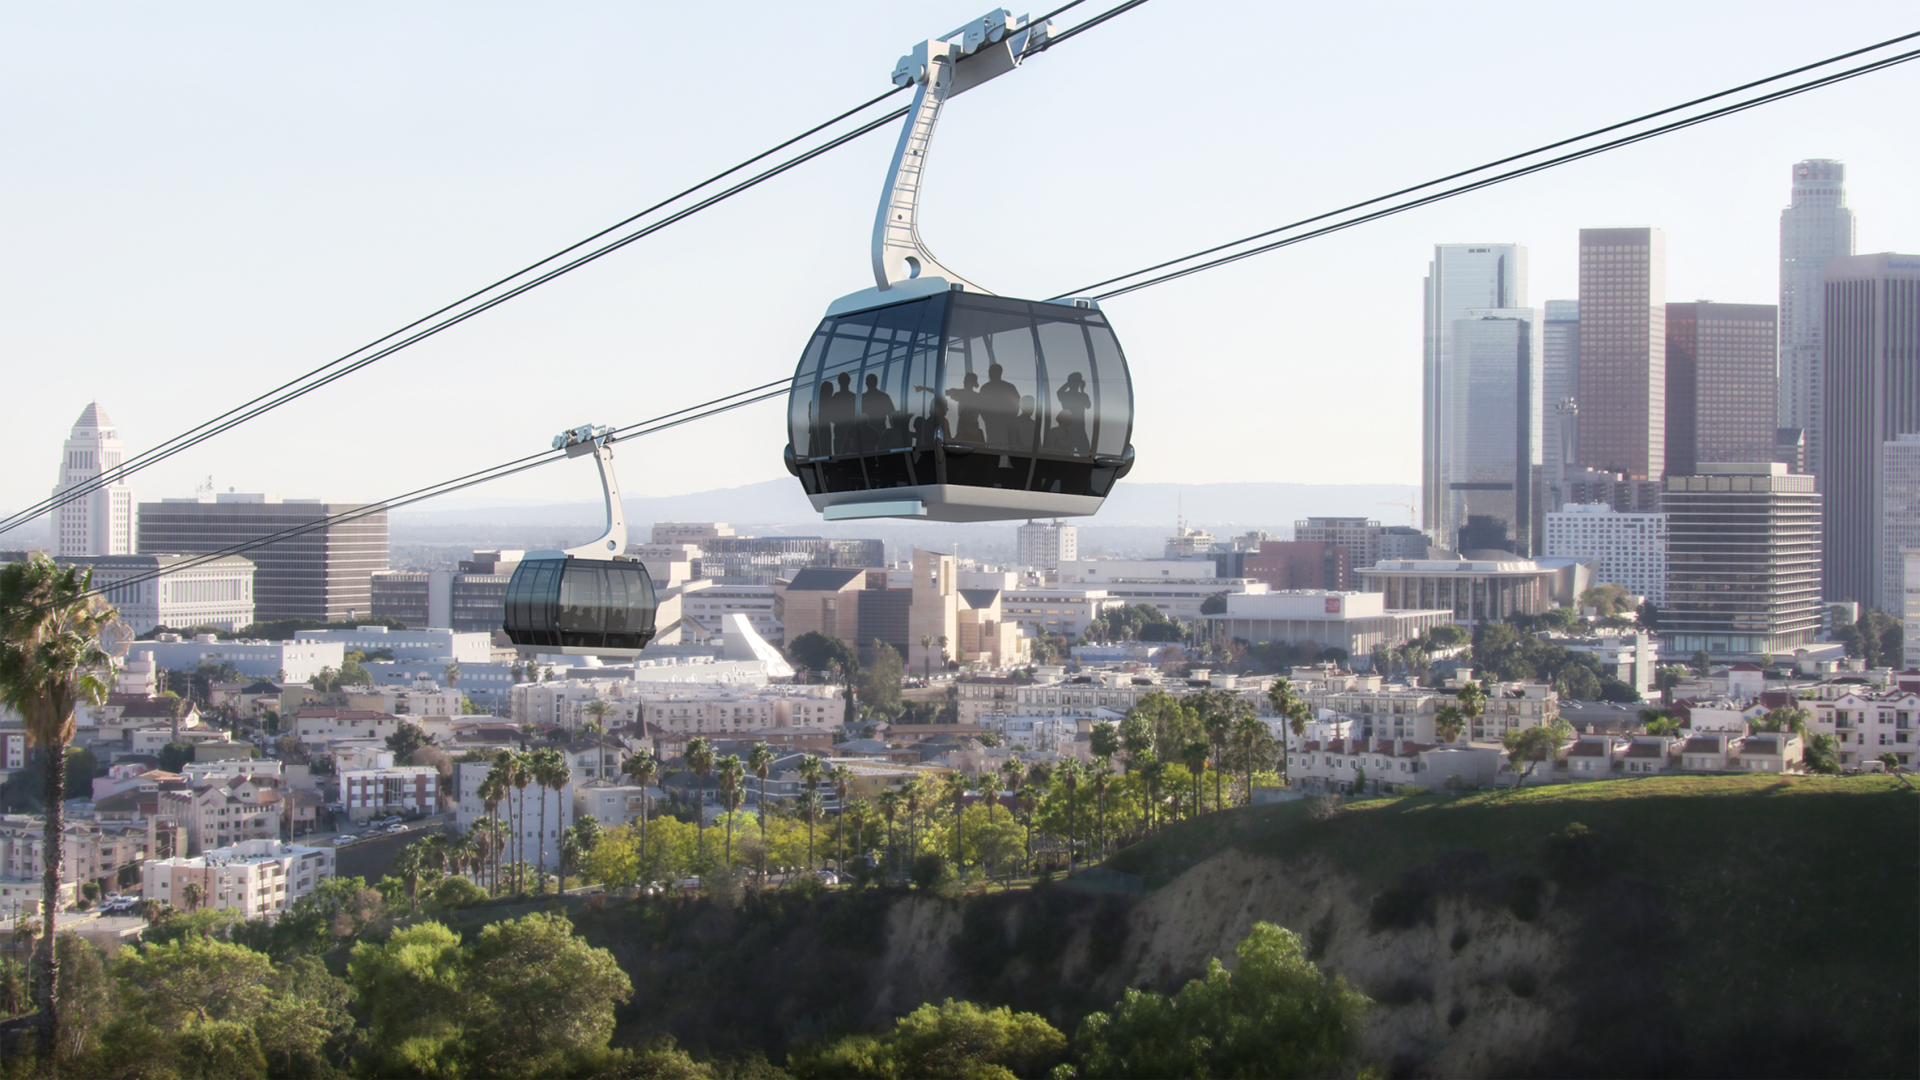 A rendering of the proposed Dodger Stadium gondola project. (Credit: Aerial Rapid Transit Technologies)